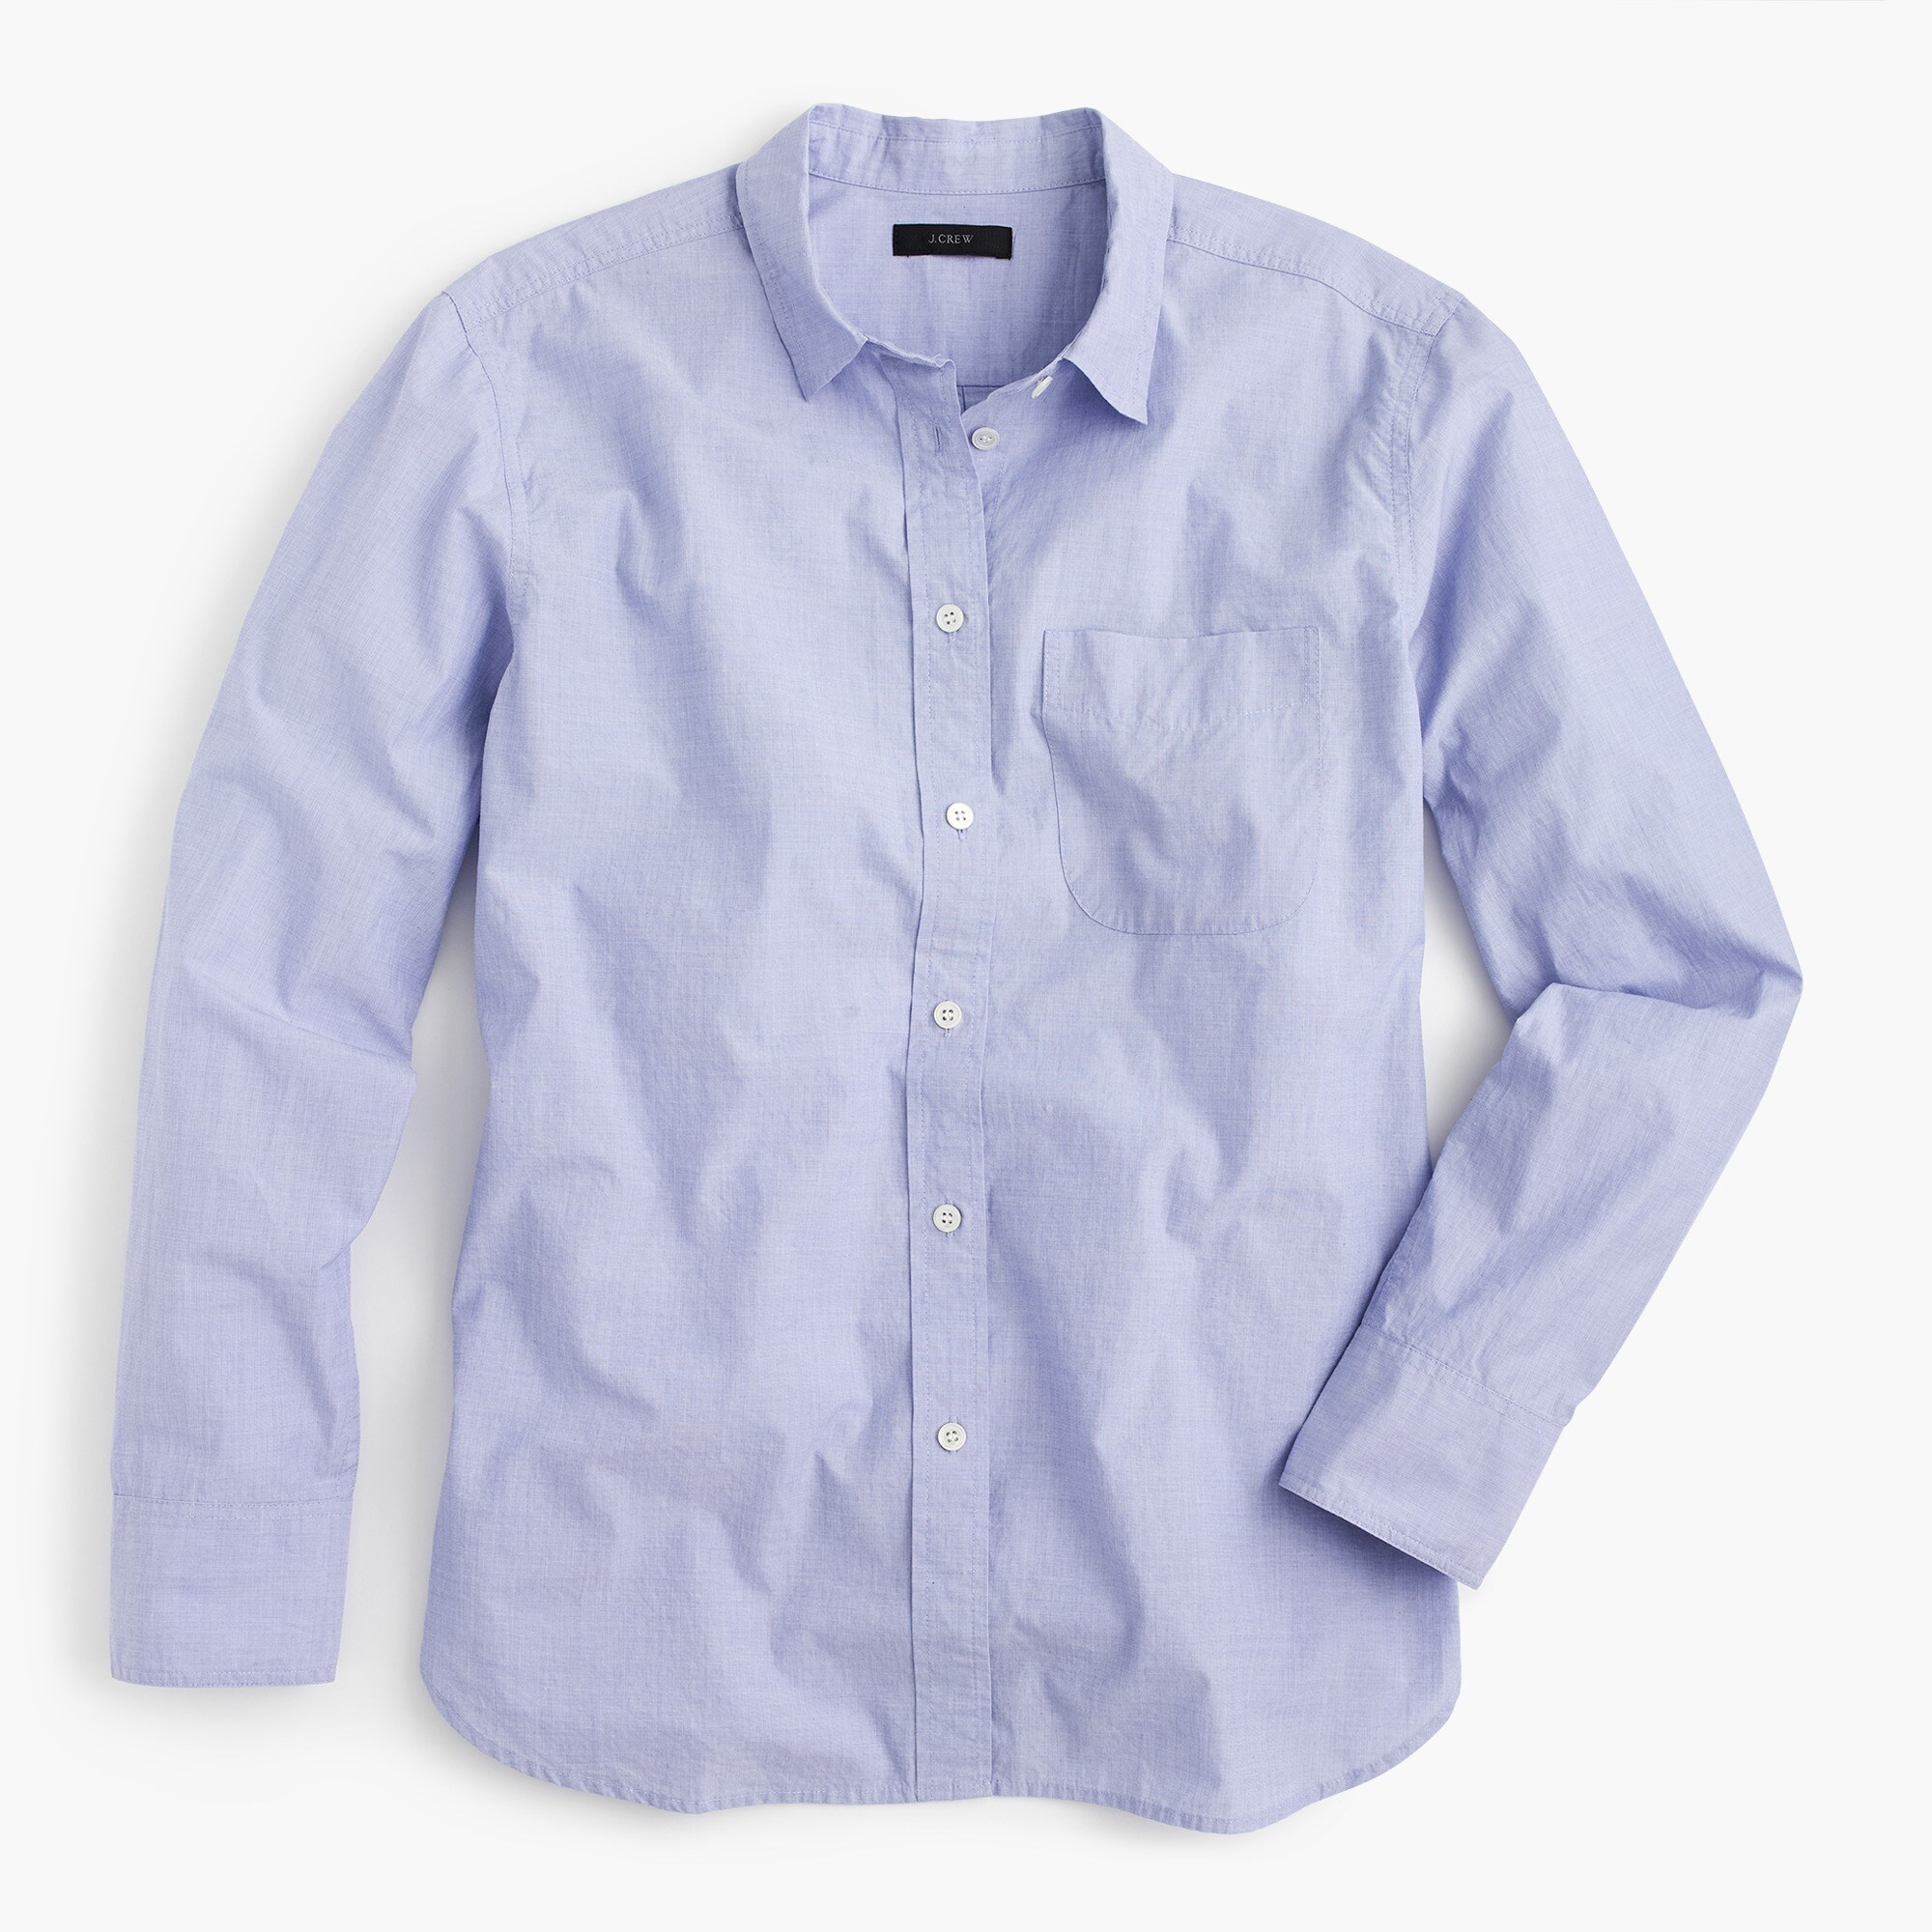 Boyfriend button-up shirt